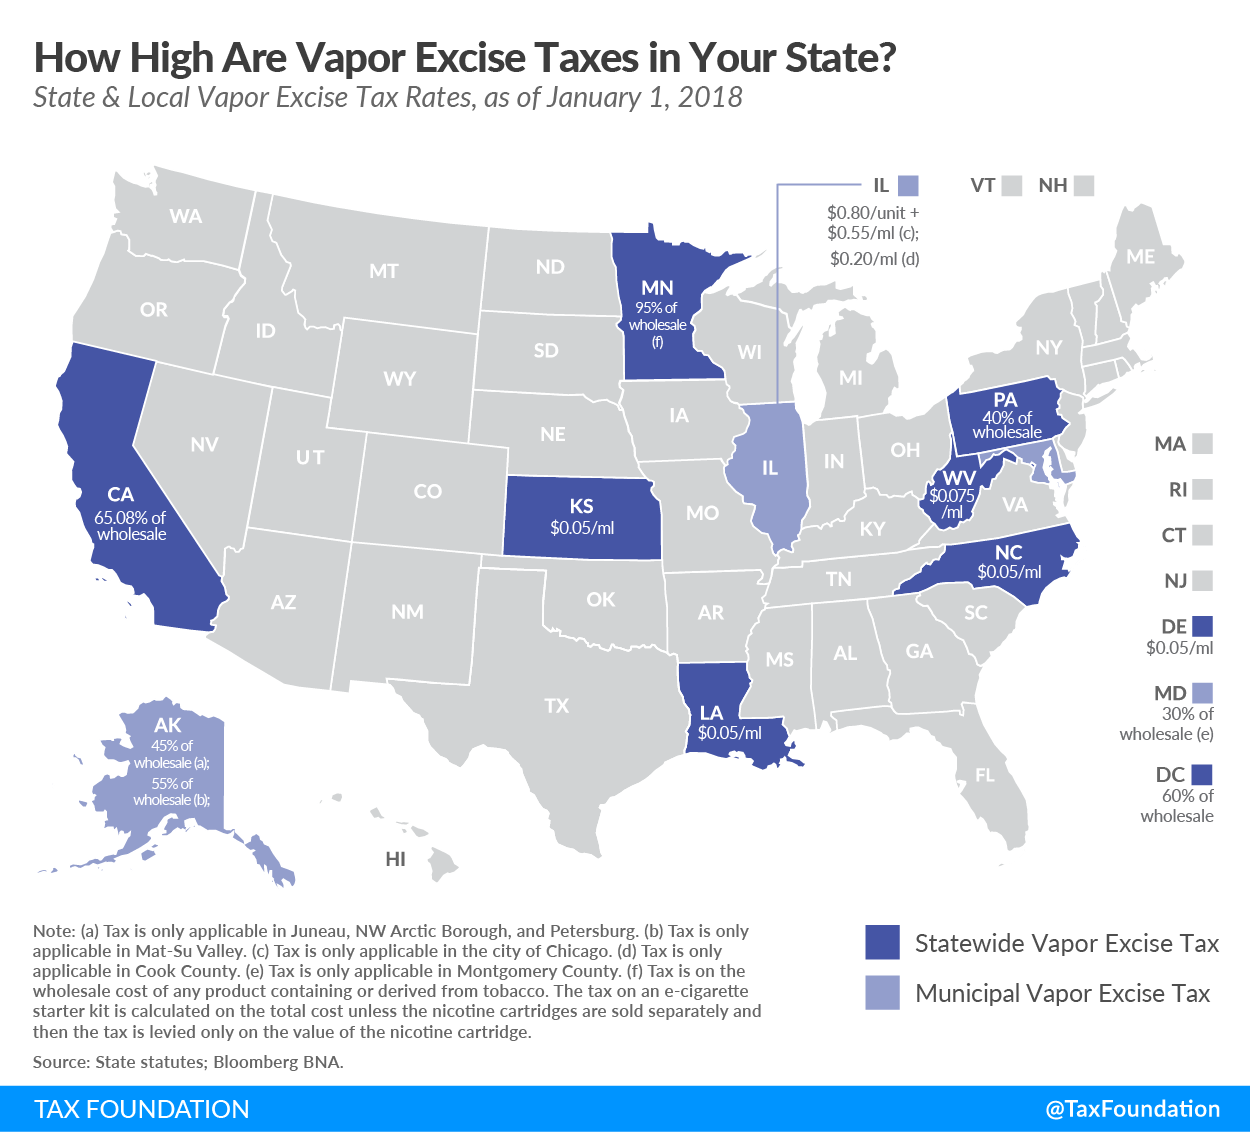 State & Local Vapor Taxes 2018